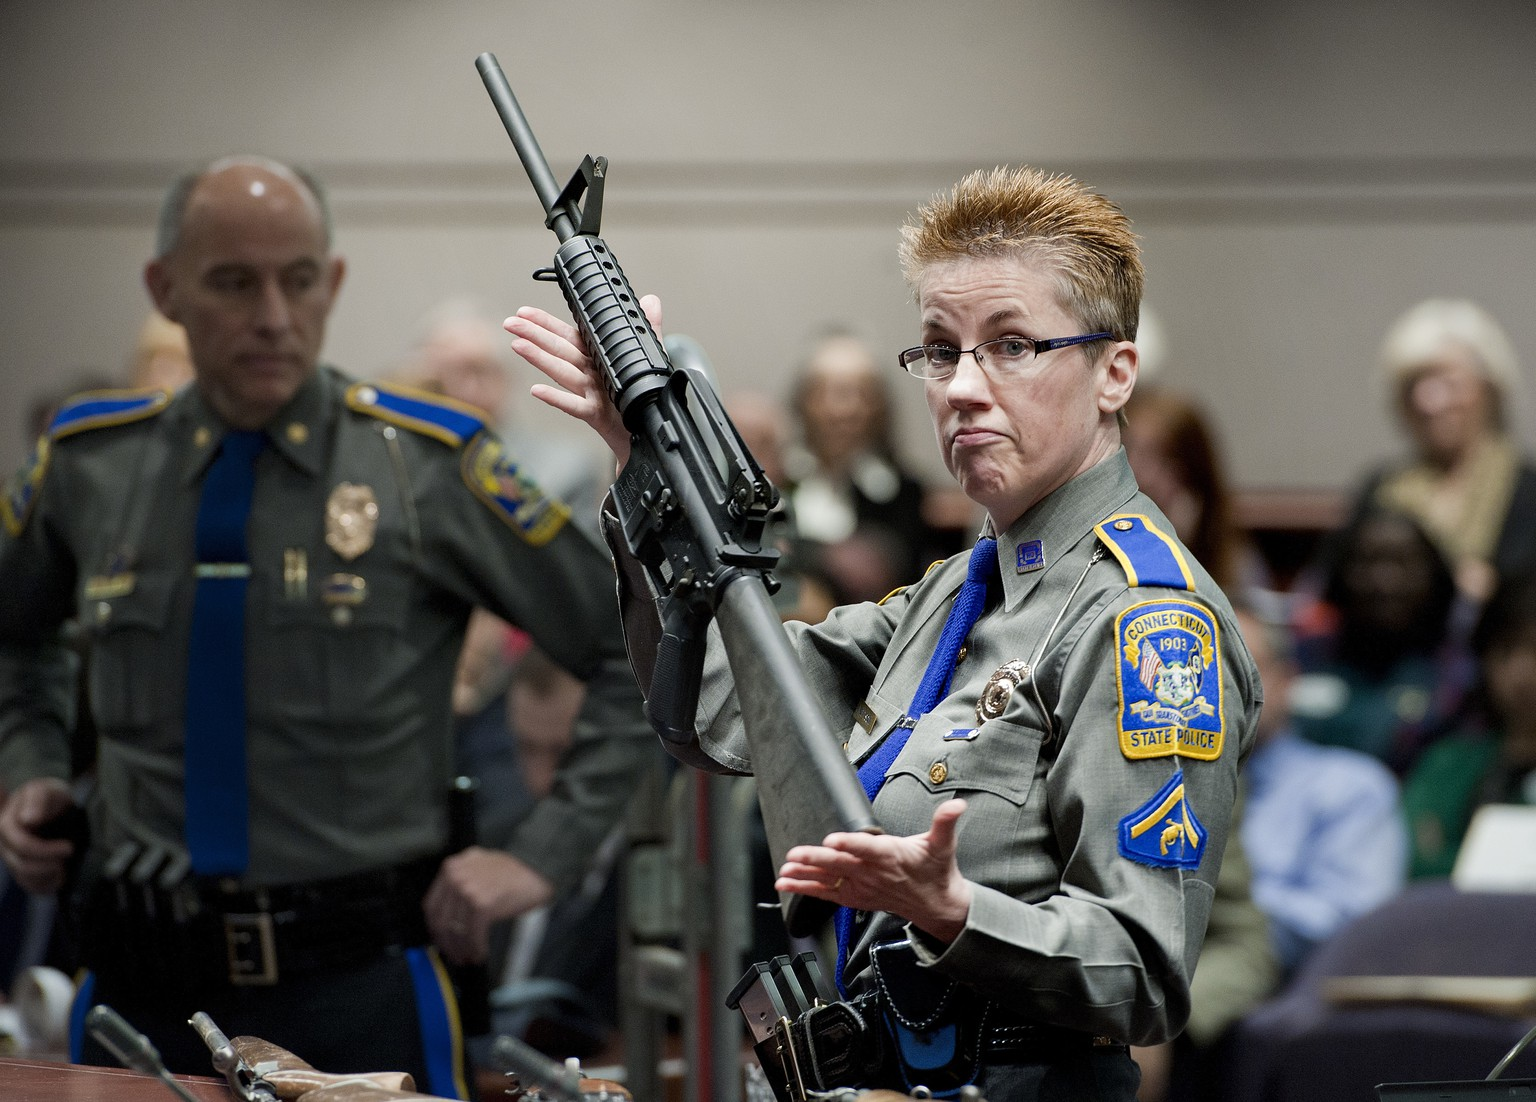 FILE - In this Jan. 28, 2013, file photo, firearms training unit Detective Barbara J. Mattson, of the Connecticut State Police, holds up a Bushmaster AR-15 rifle, the same make and model of gun used by Adam Lanza in the Sandy Hook School shooting, for a demonstration during a hearing of a legislative subcommittee reviewing gun laws, at the Legislative Office Building in Hartford, Conn. Mass shooters have sometimes obtained guns by exploiting limited weapons laws and blind spots in the background-check process or weapons purchased by others. Lanza used his mother's weapons in the massacre at Sandy Hook Elementary School. (AP Photo/Jessica Hill, File)